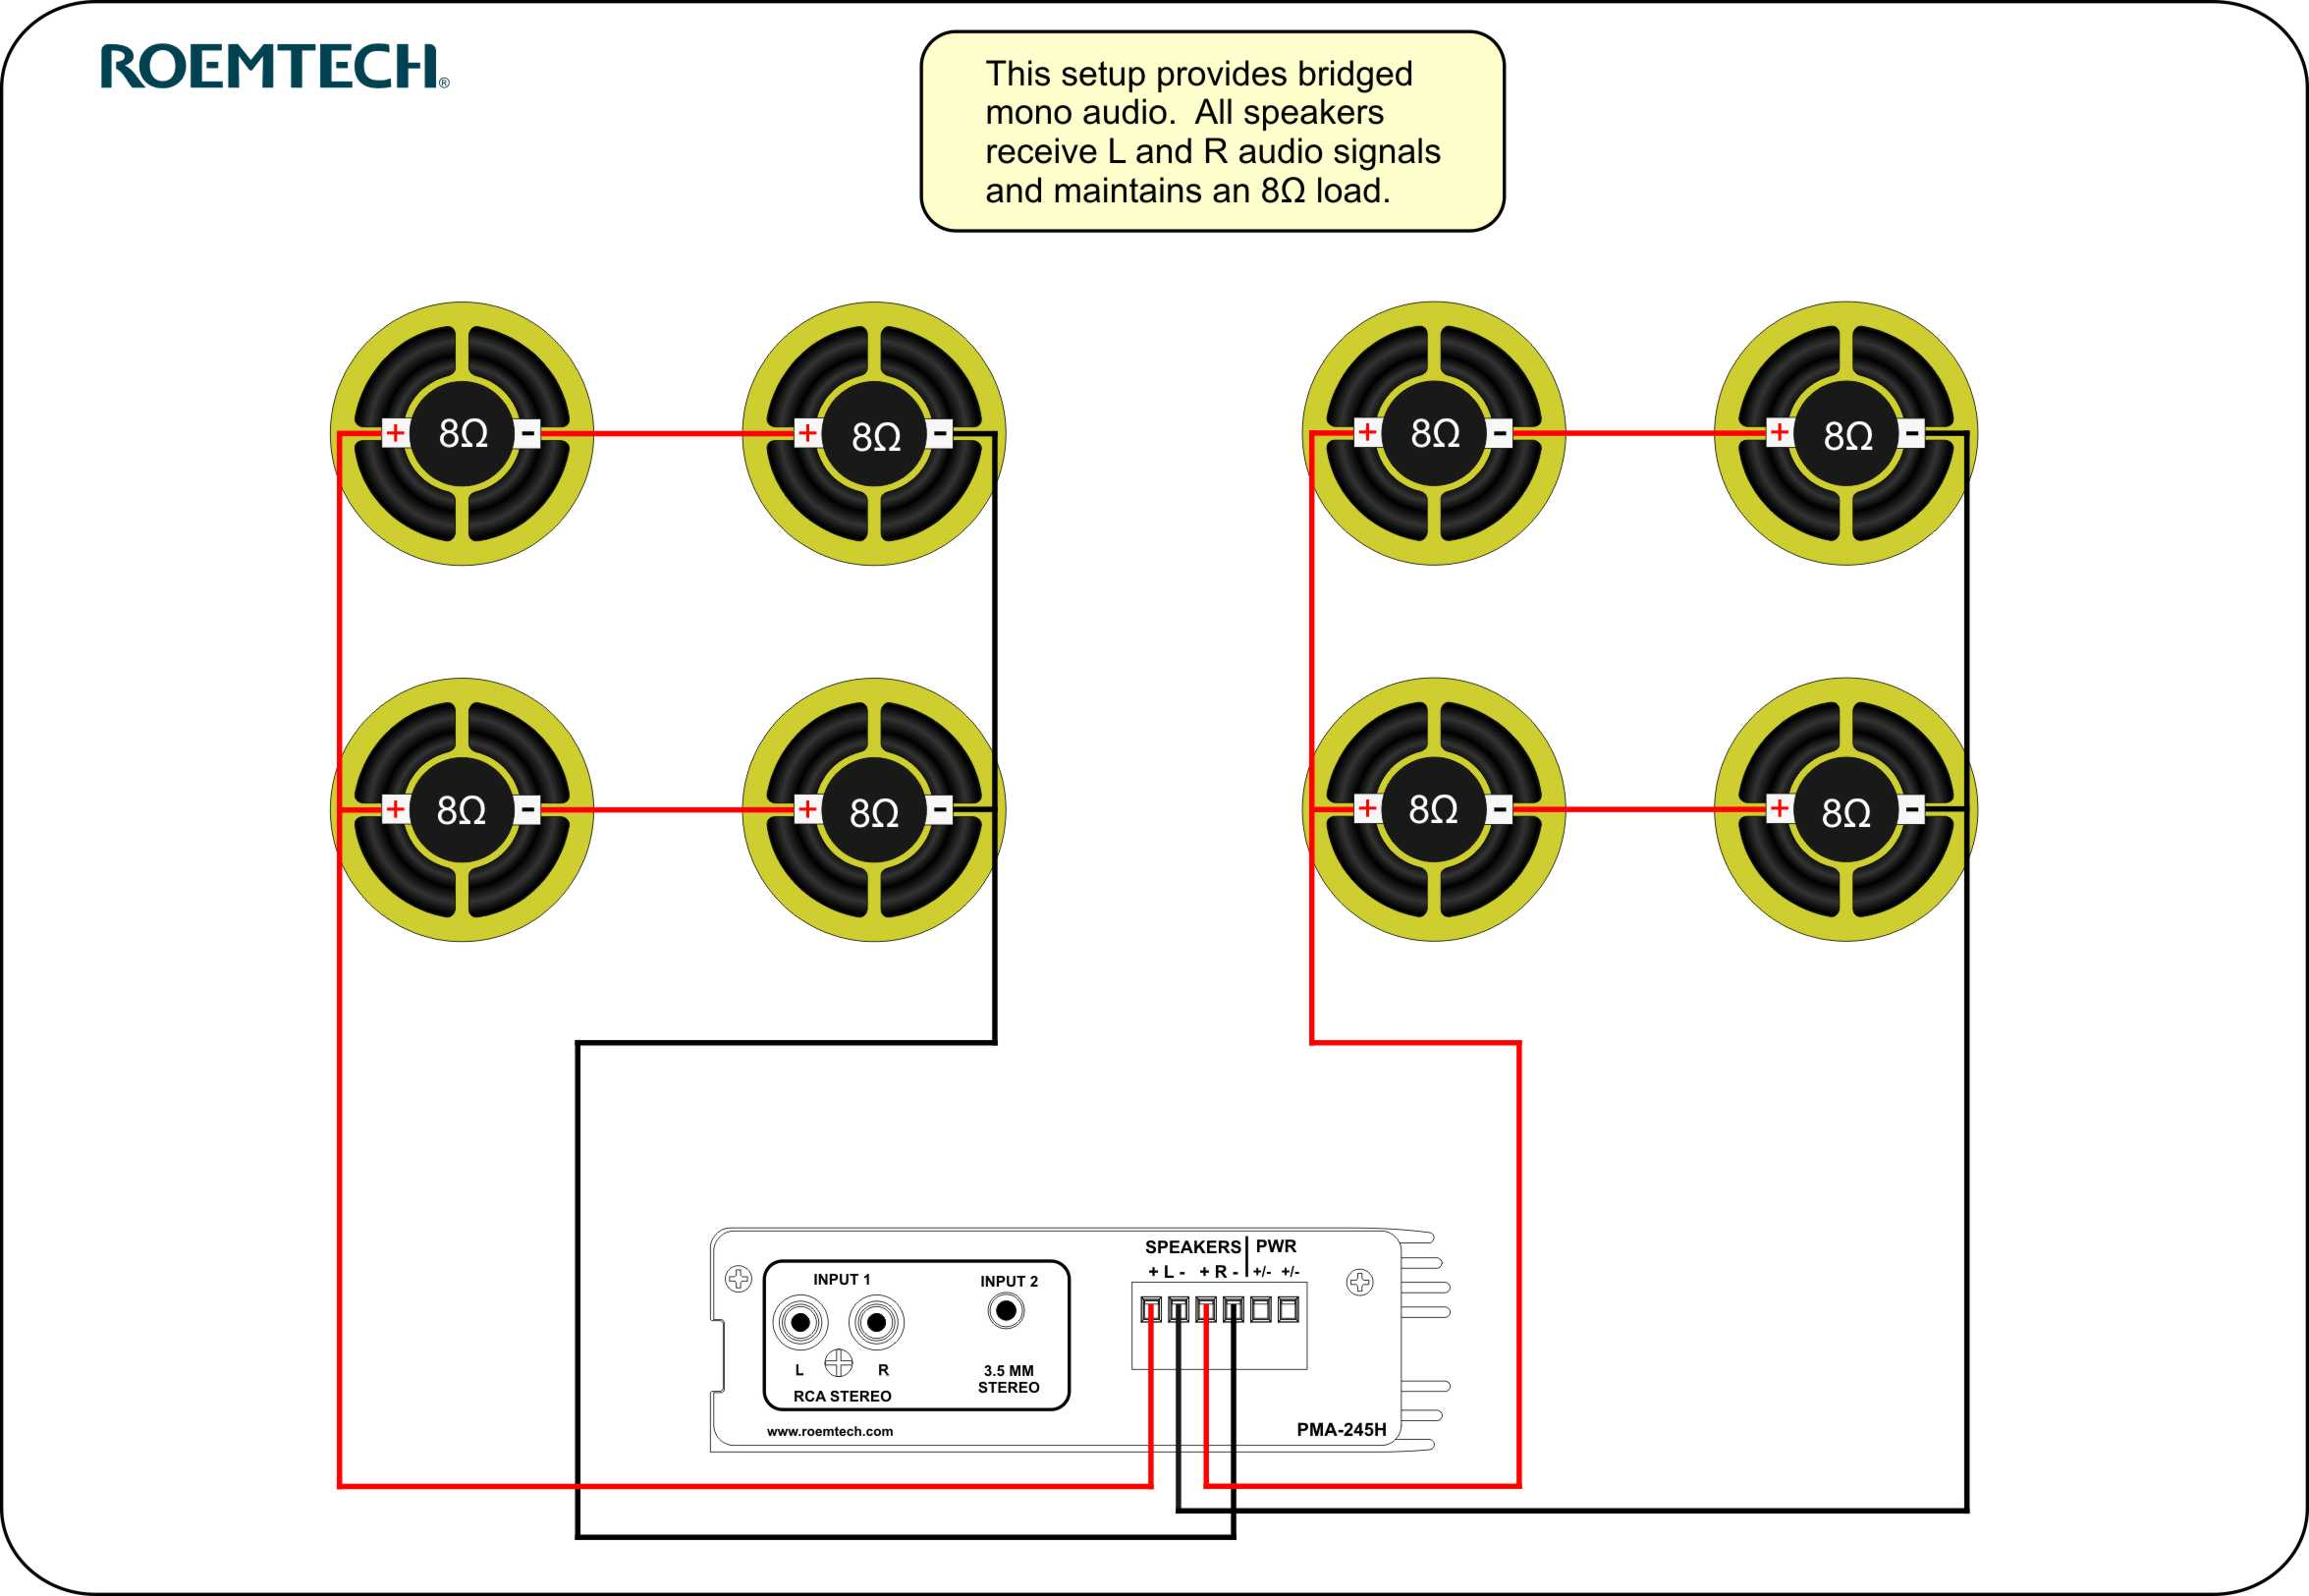 classroom_audio_multiple_speaker classroom audio systems multiple speaker wiring diagram speaker wiring diagram at pacquiaovsvargaslive.co